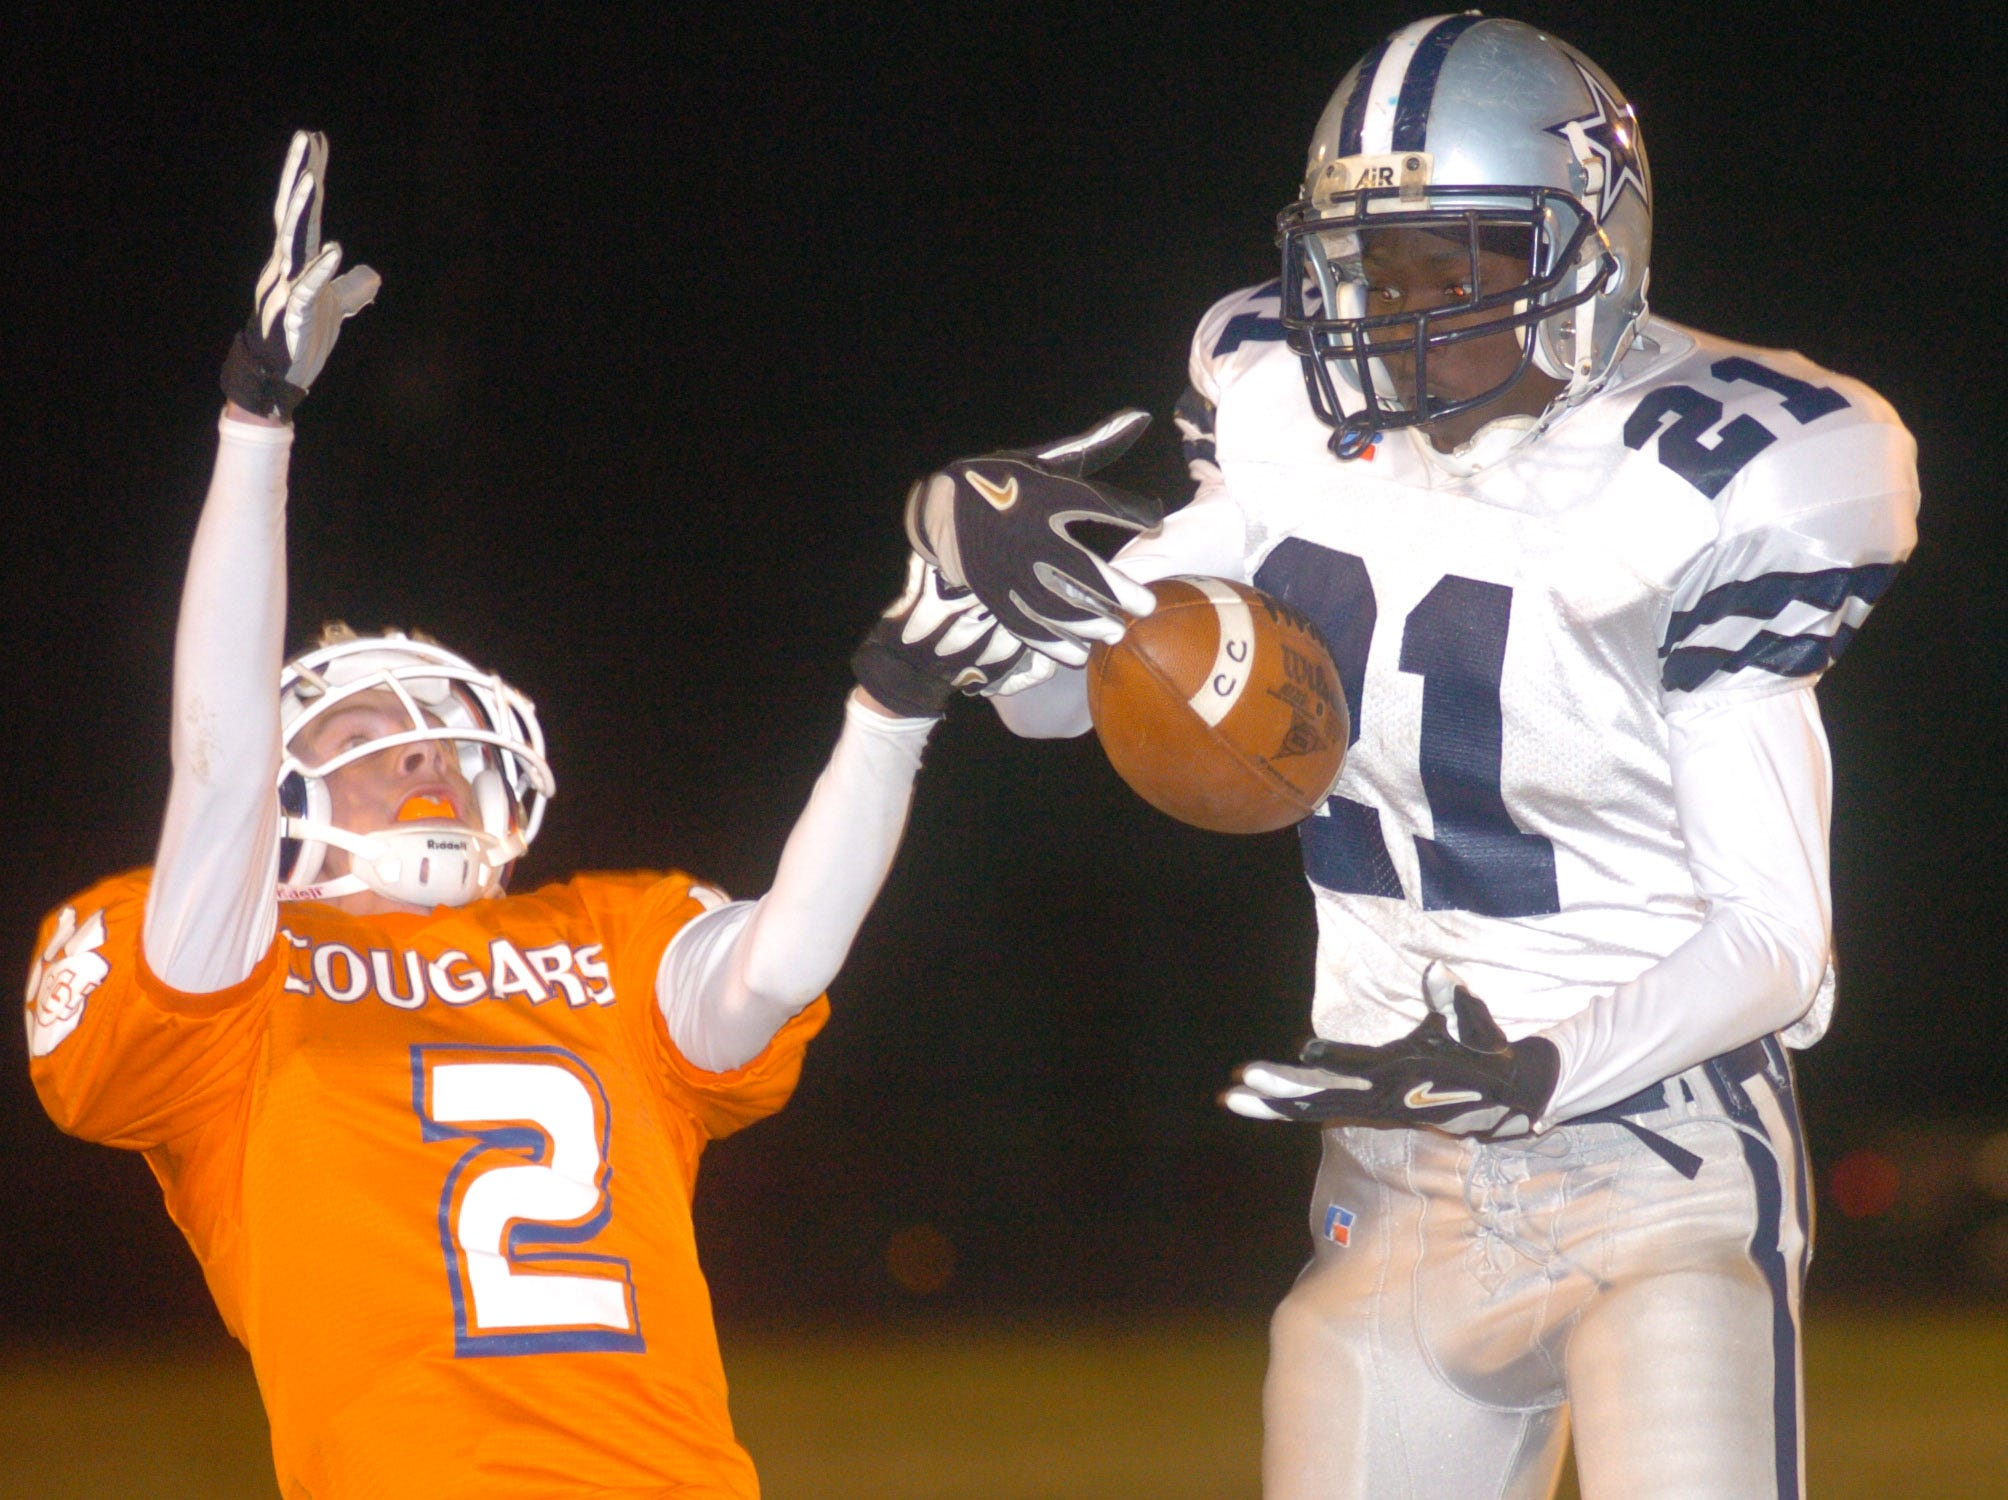 Farragut's Marcus Huie (21) deflects a pass intended for Campbell County's Josh Allen (2) in the first half Friday night at Campbell County. 11/05/2004